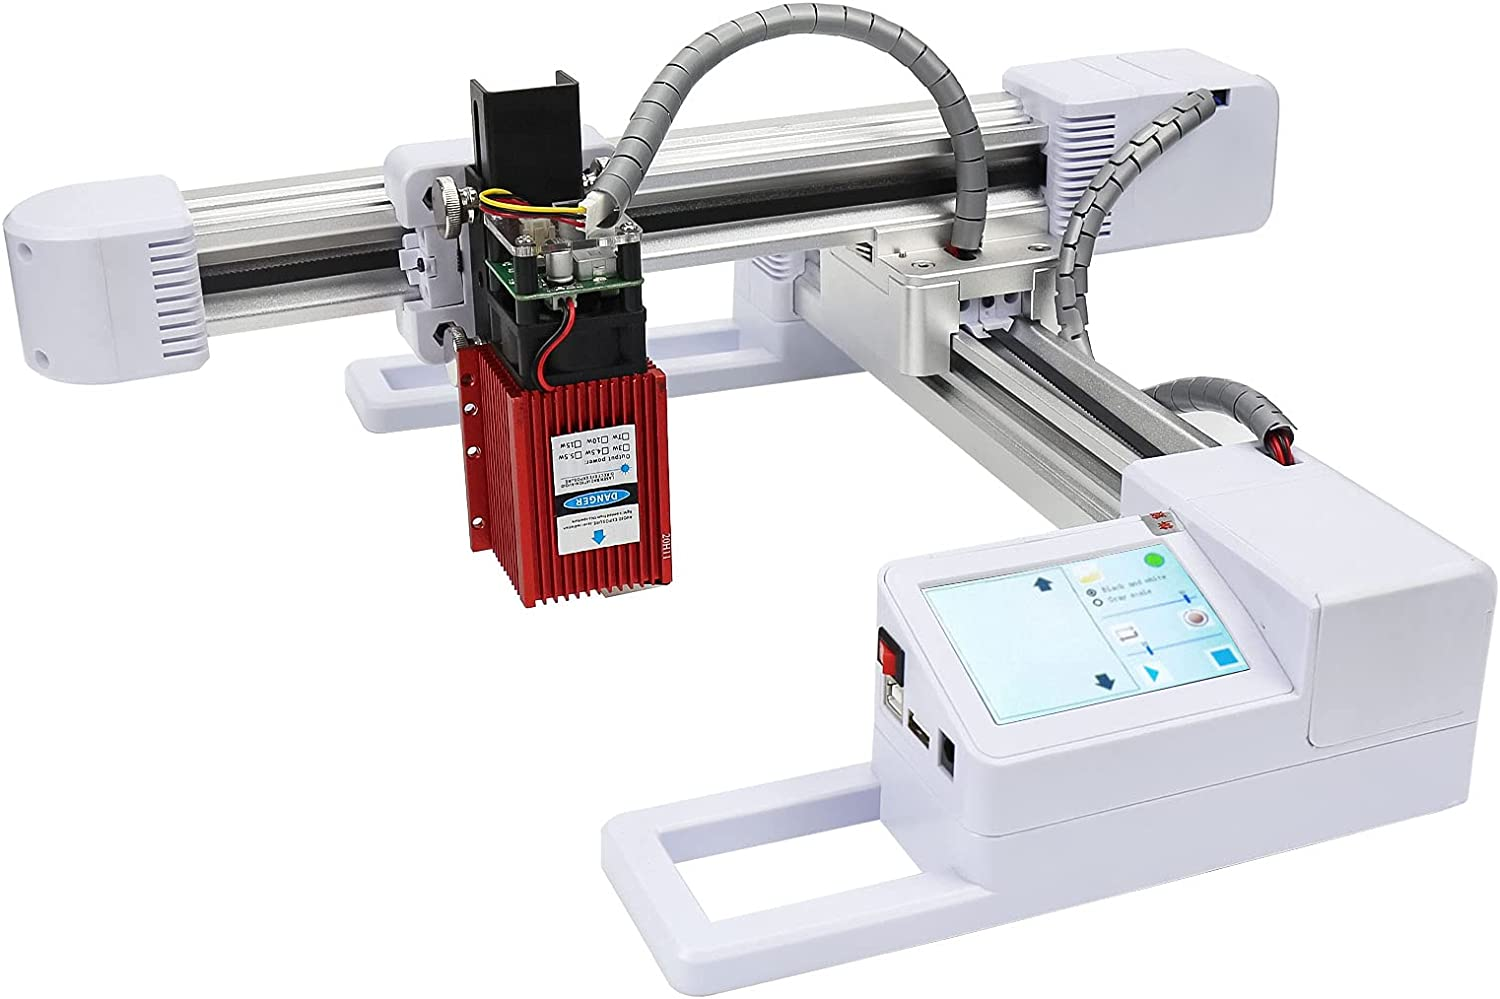 WAINLUX L1 Fixed Focus Laser Engraver, 30W Laser Engraving Machine Cutting Machine, Support Win and Mobile WiFi Connection, Used for DIY Logo Wood, Leather, Food or Design — White